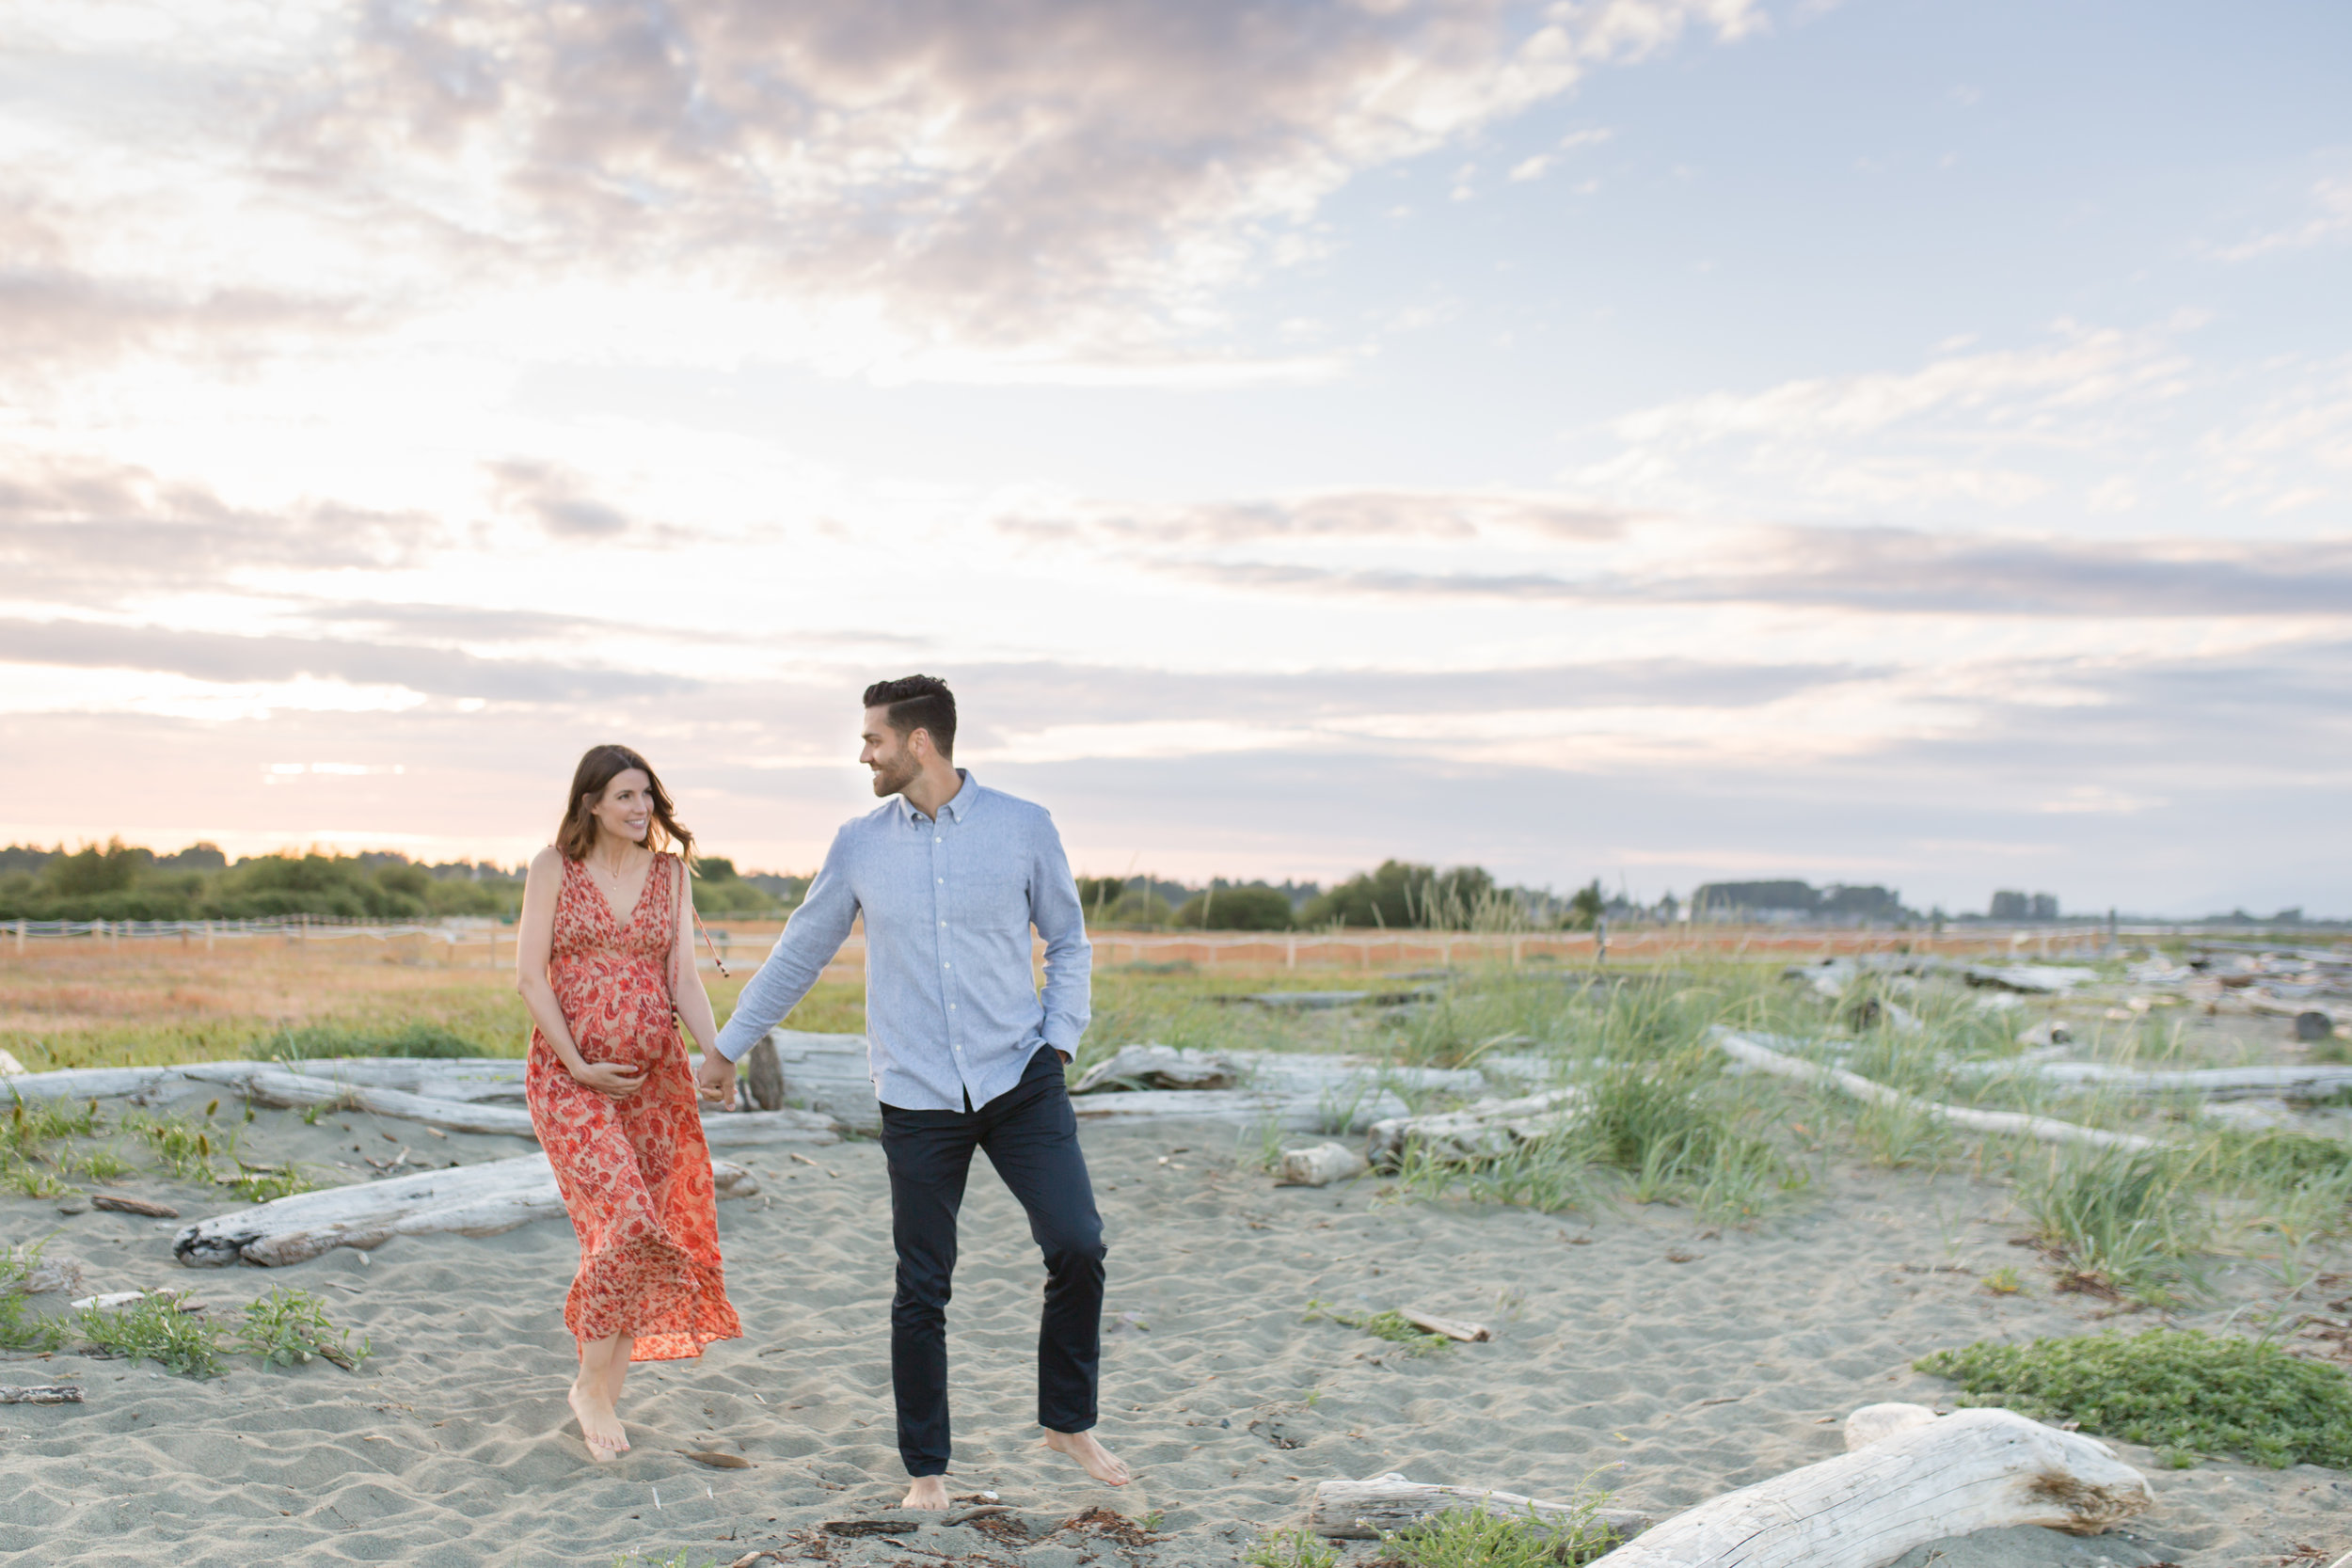 Centennial Beach Maternity Photos -21.jpg